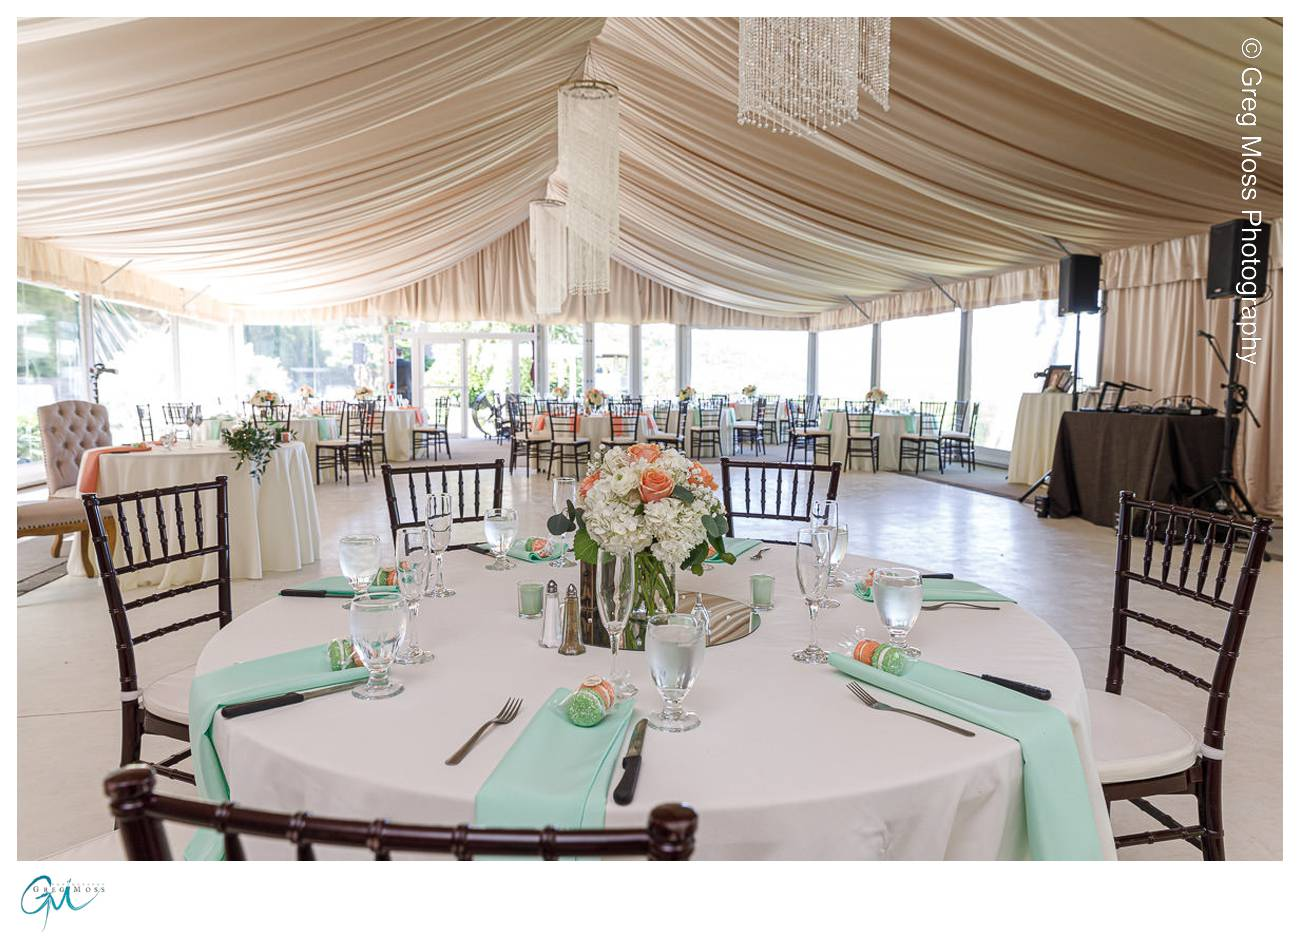 Photo inside tent with tables set with flower centerpieces and mint colored napkins